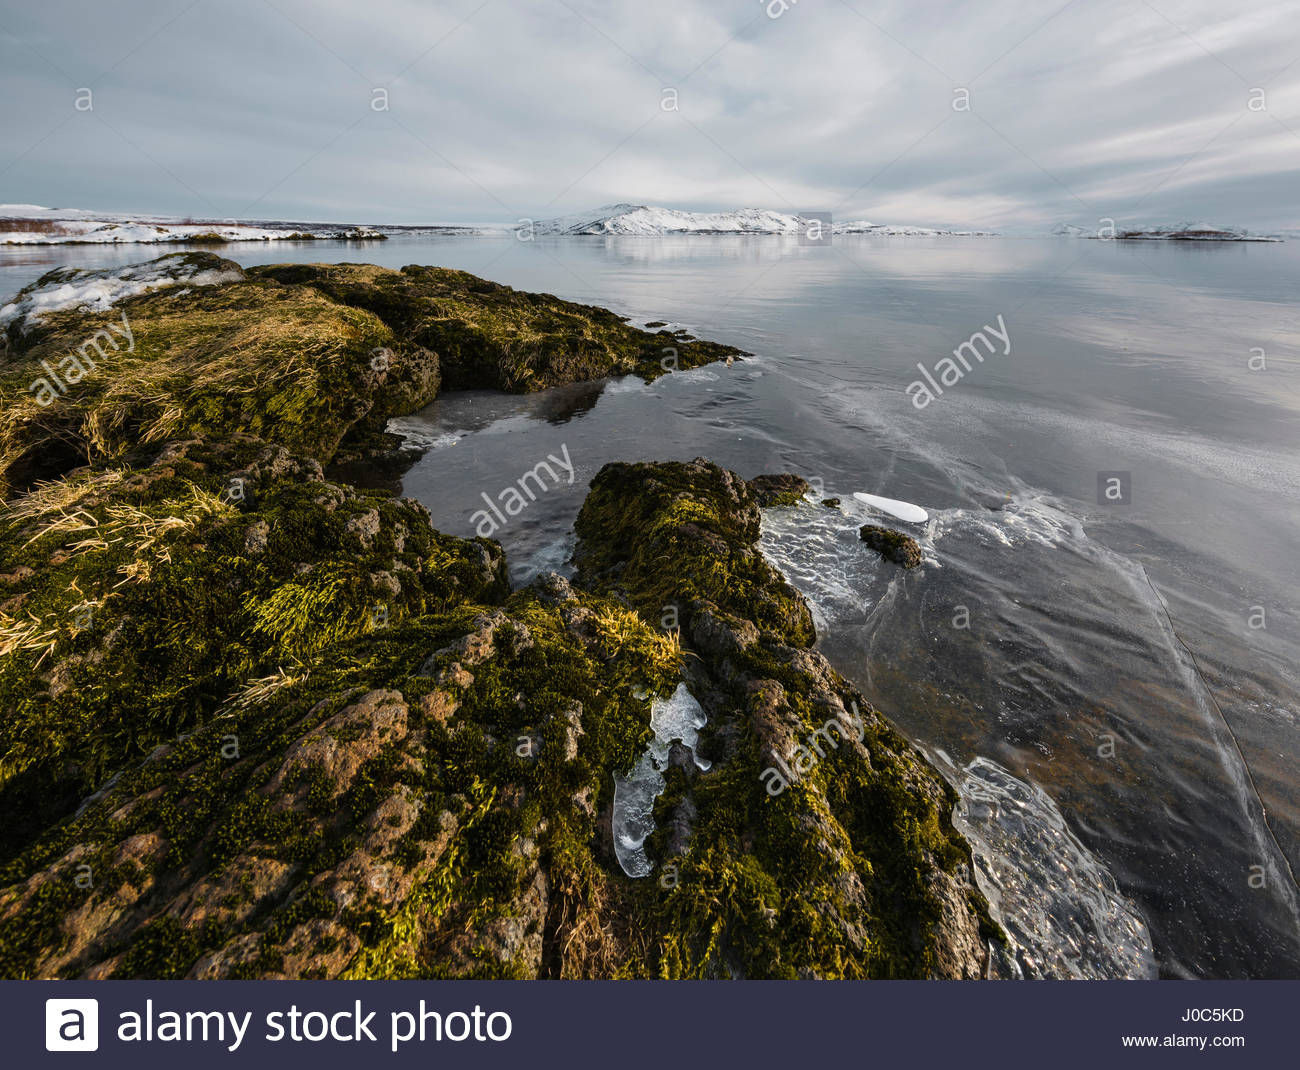 Ice on lake rocks at water's edge, Thingvallavatn, Iceland - Stock Image